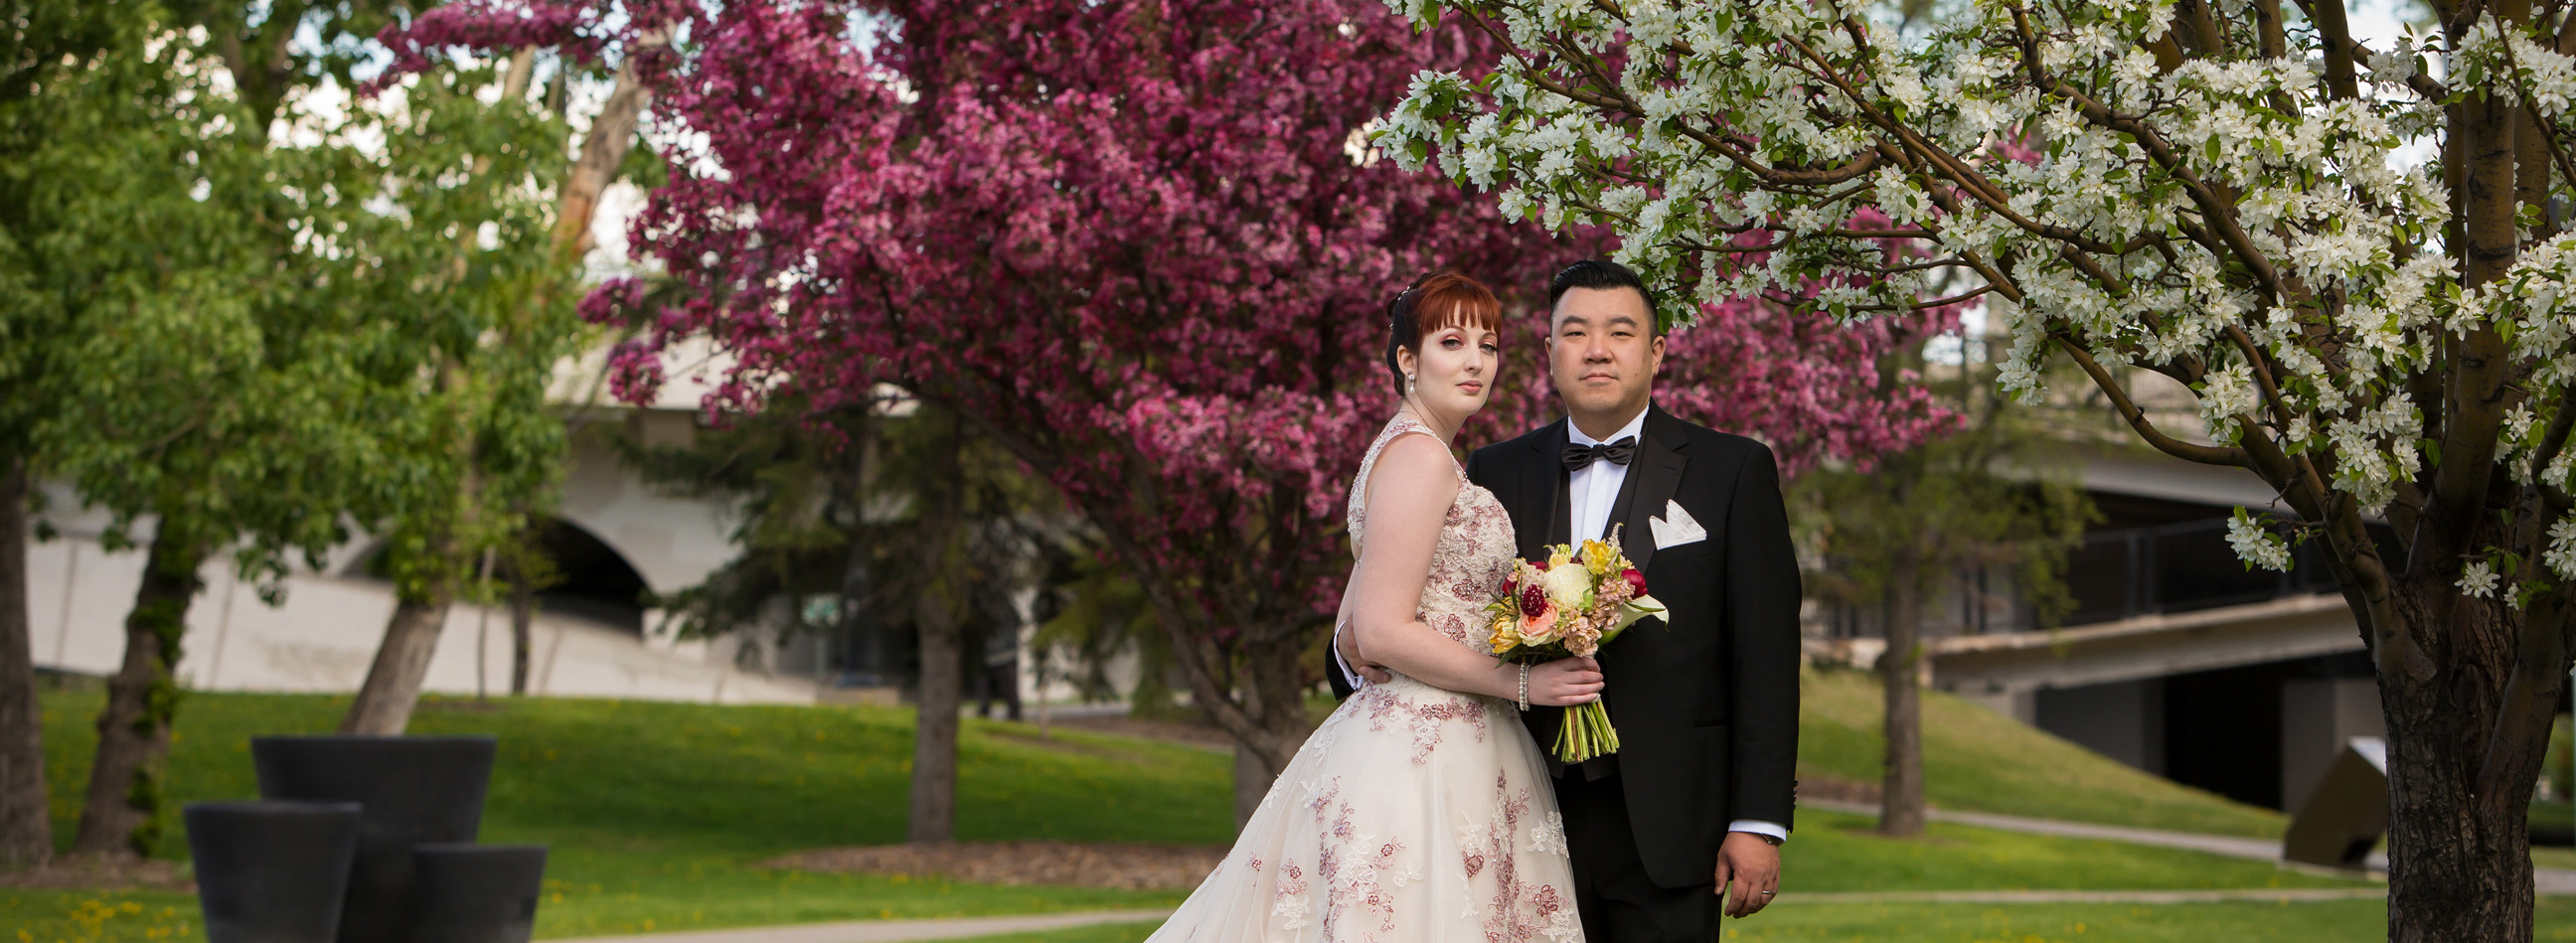 Brittany testimonial, Calgary wedding in front of pink and white cherry blossoms downtown